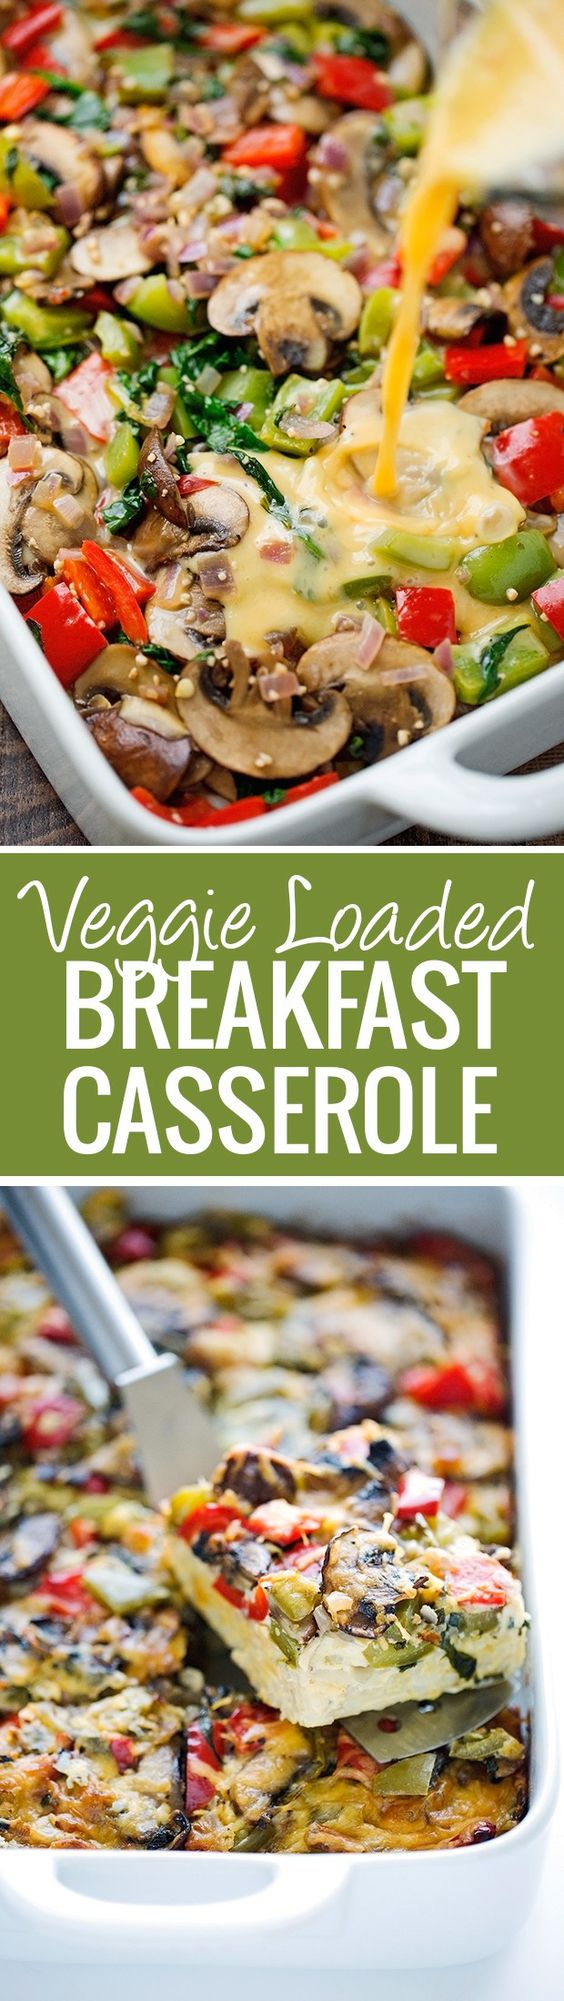 Primal Veggie-Loaded Breakfast Casserole Recipe | Little Spice Jar - Made with hash browns and all your favorite veggies! Add in rotisserie chicken, crumbled sausage or anything else you please - it's totally customizable and packed with nutrients!: